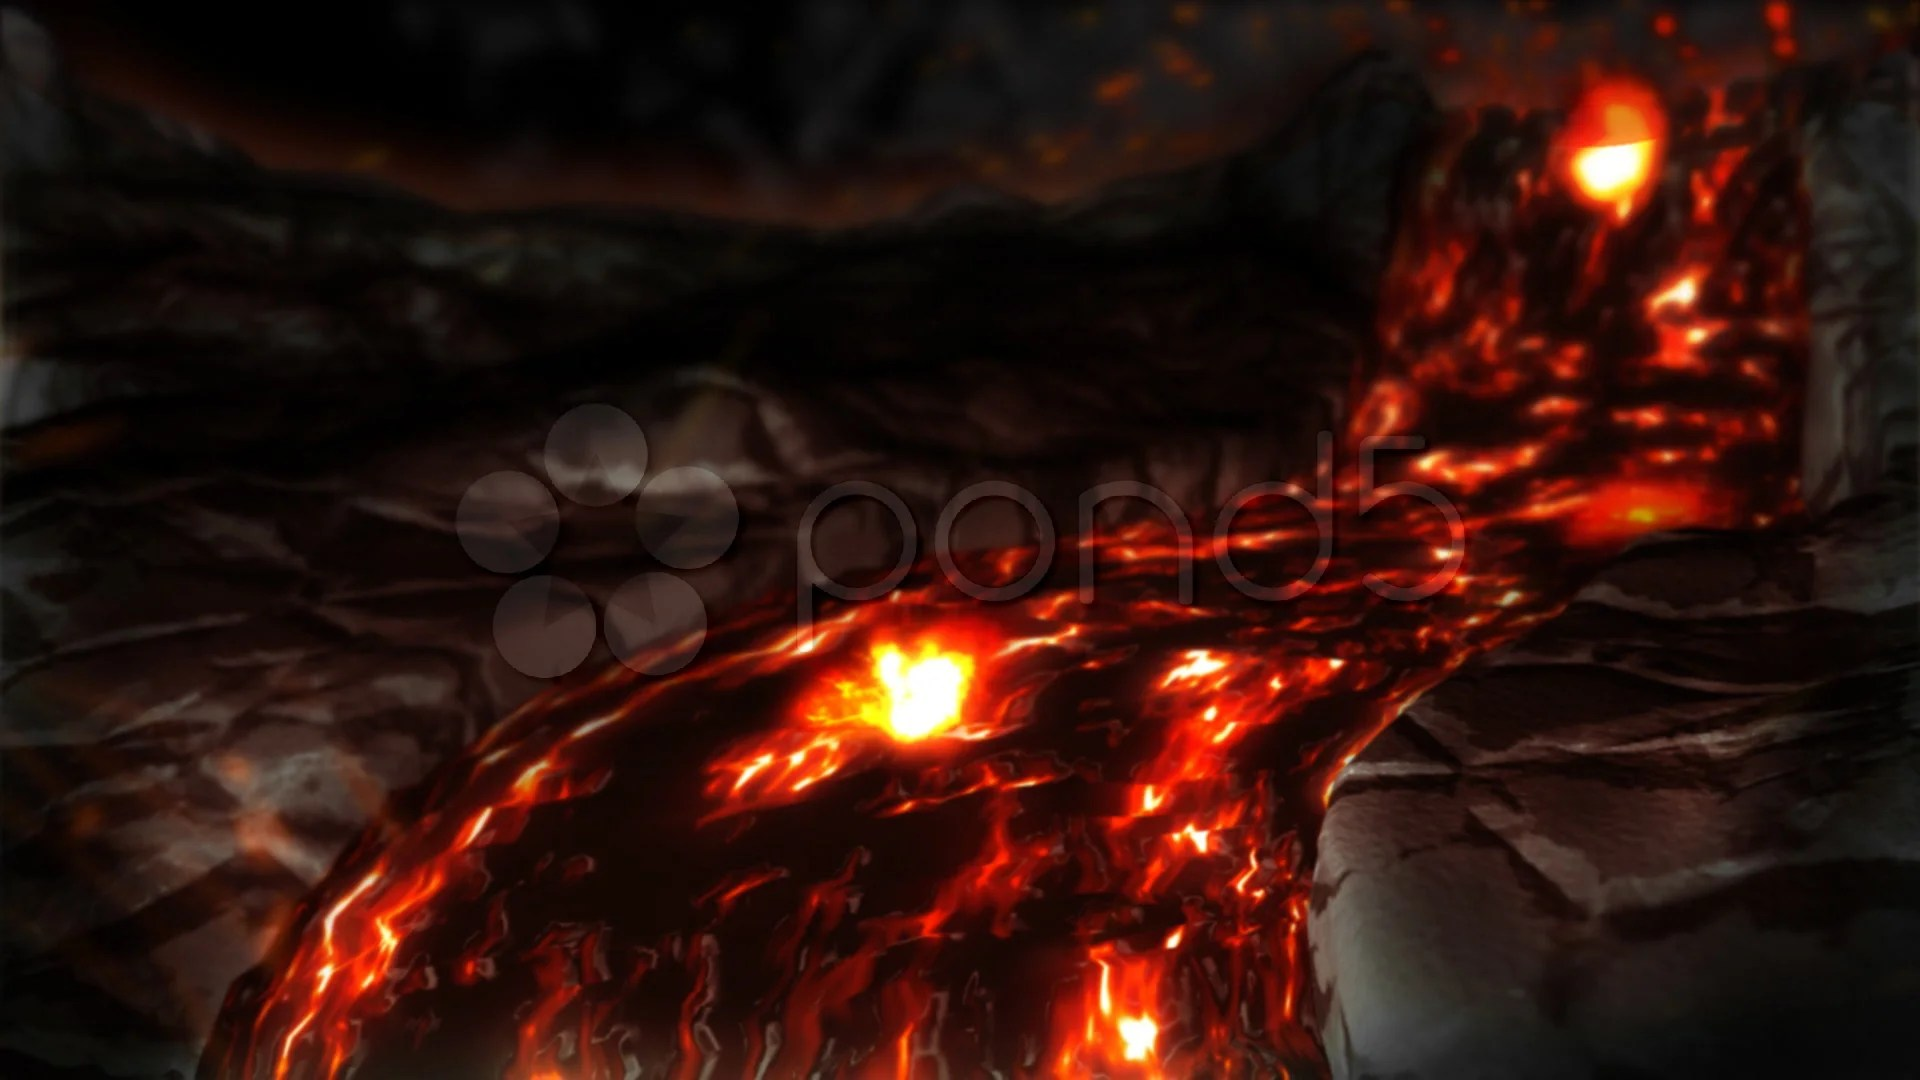 Cool Animal Print Wallpaper Stock Video 3d Animated Lava Flow Buy Now 510124 Pond5